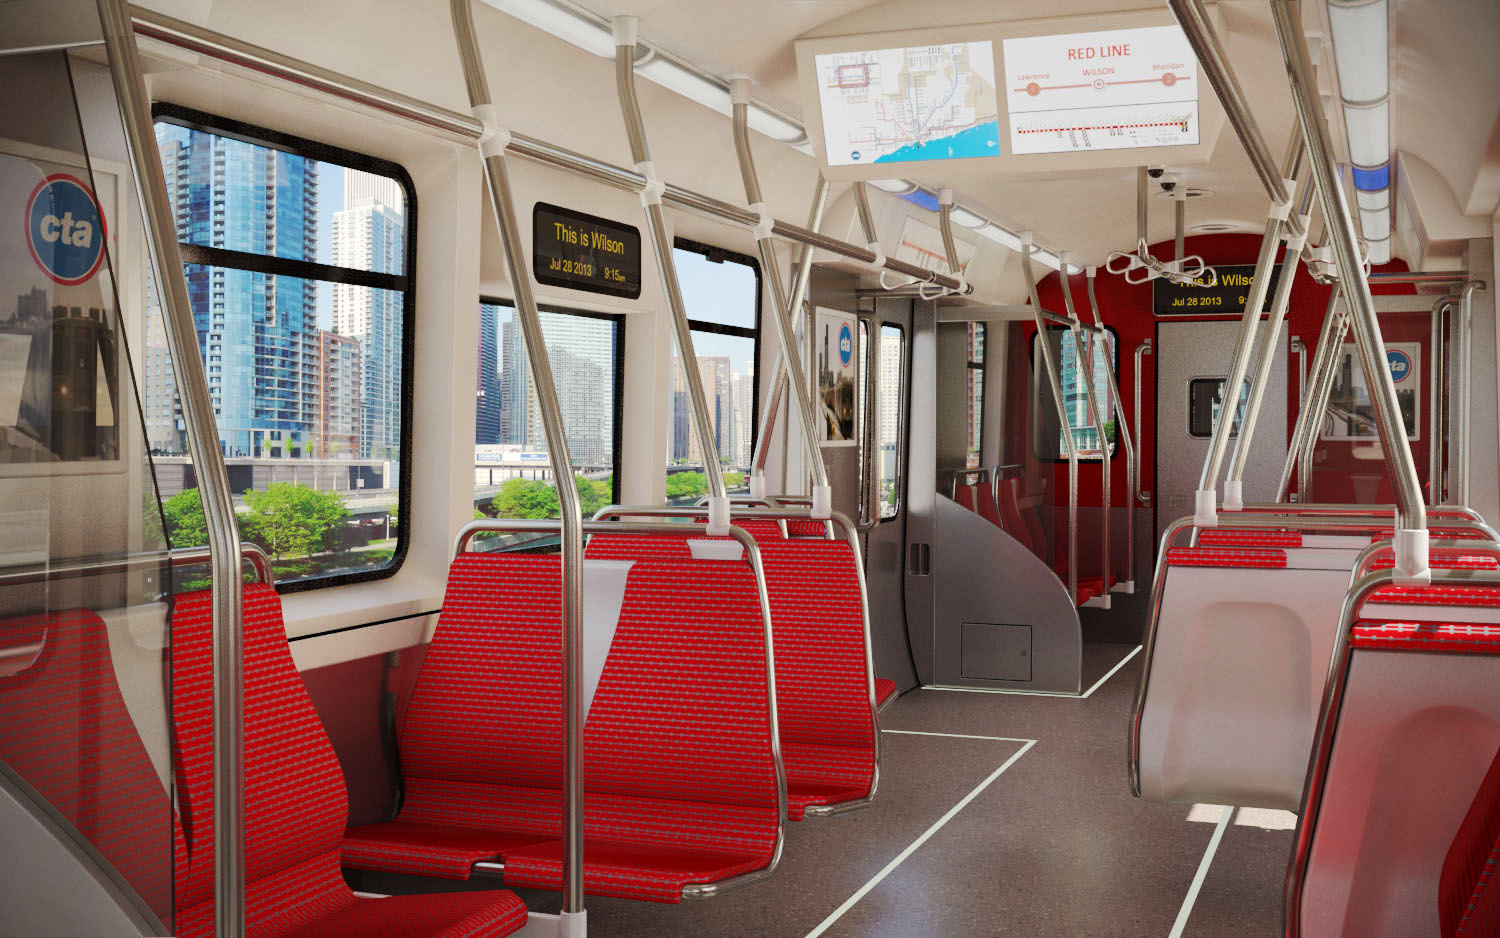 CTA 7000 series – Car Proposal (2013)